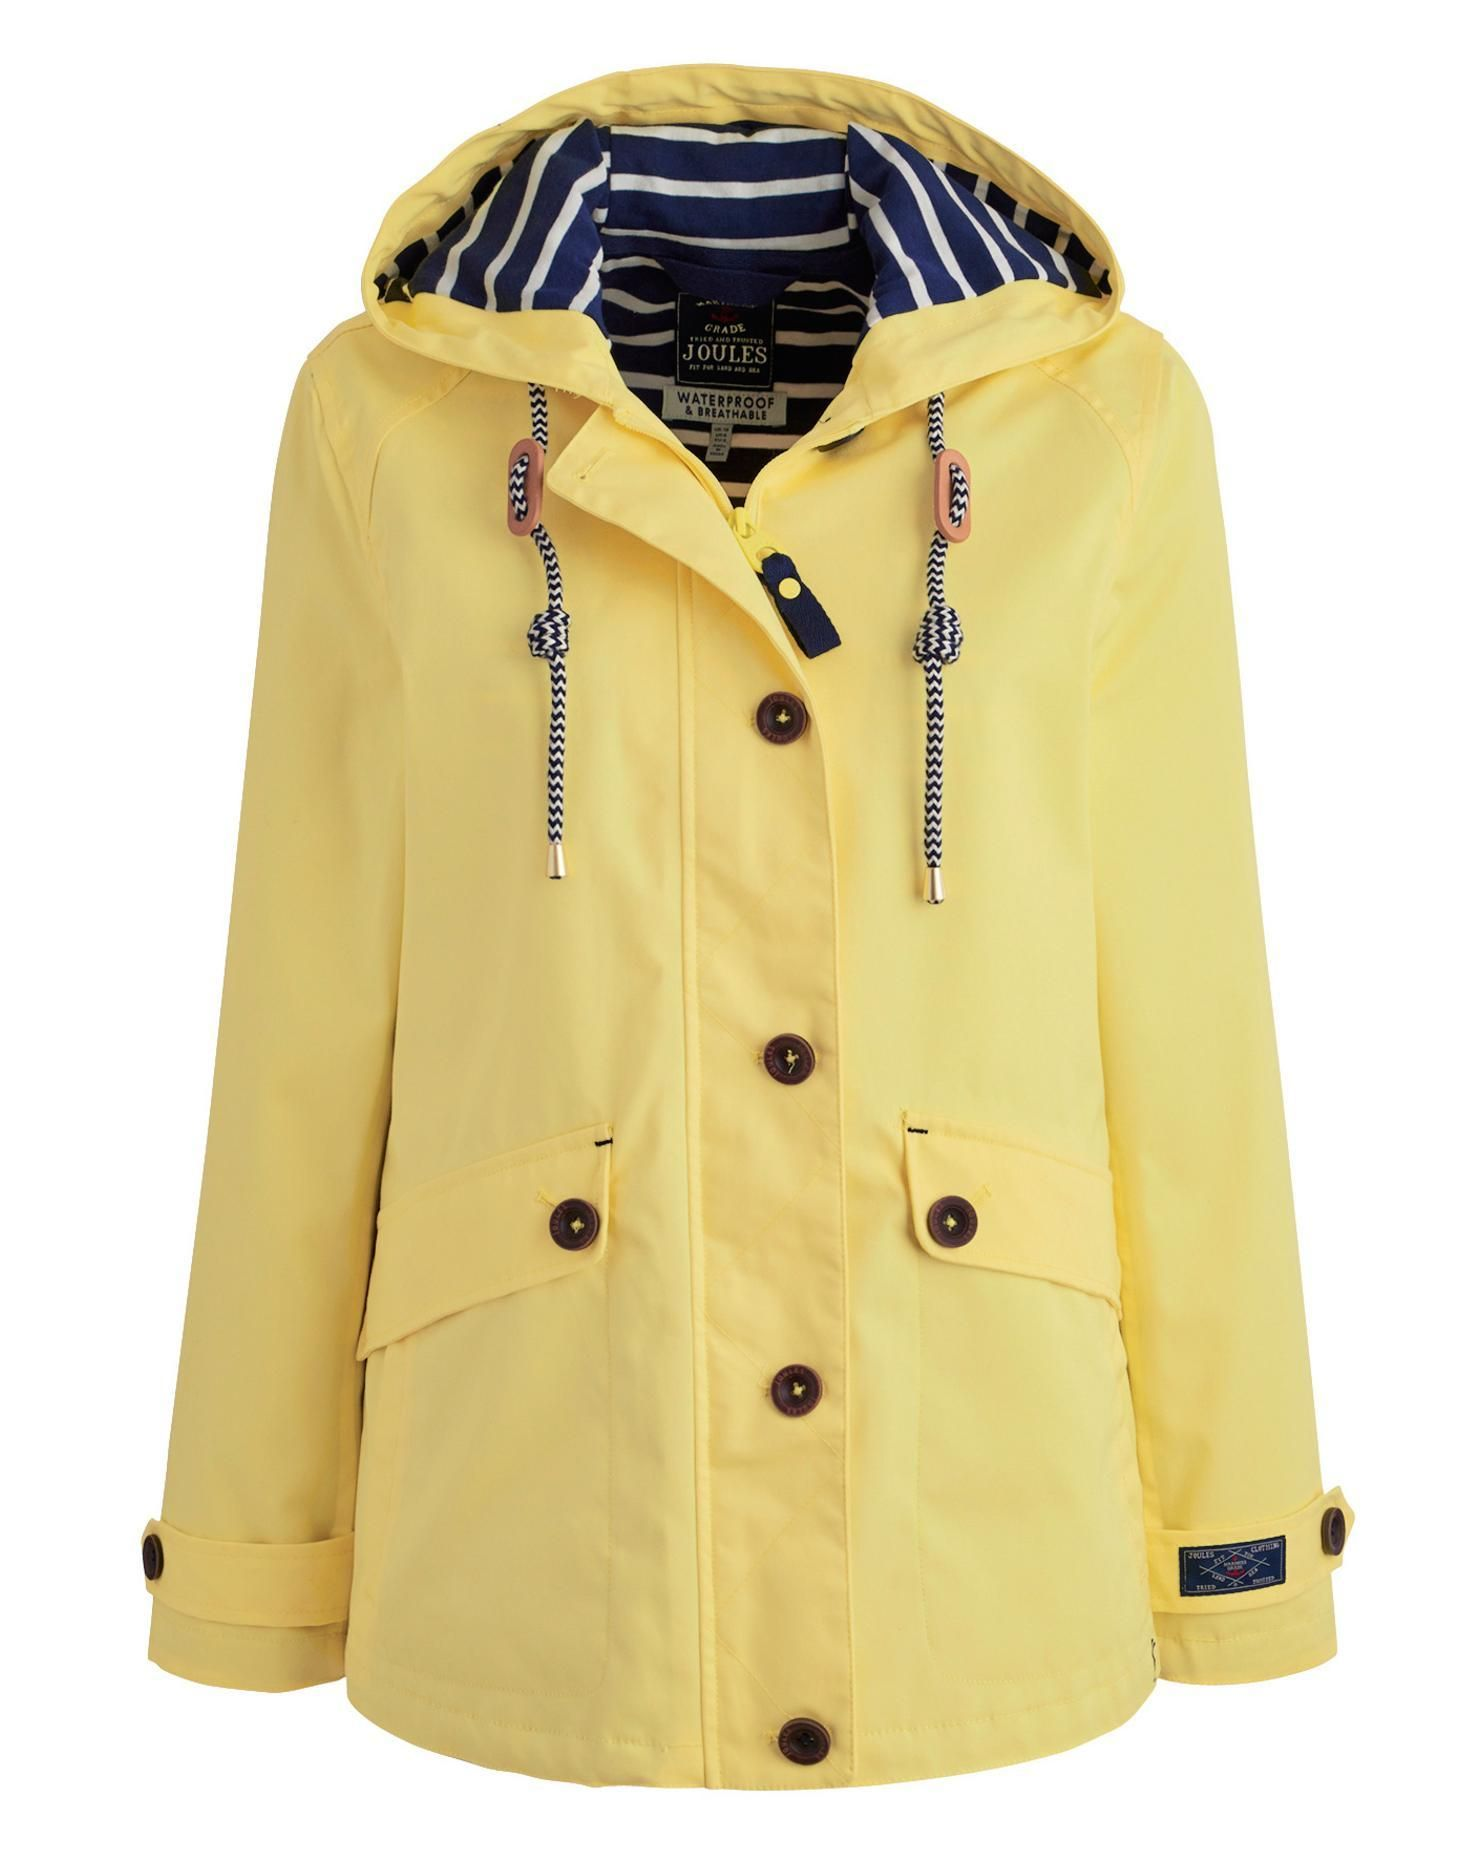 Joules Women's Waterproof Hooded Jacket, Lemon. Part of our Right ...